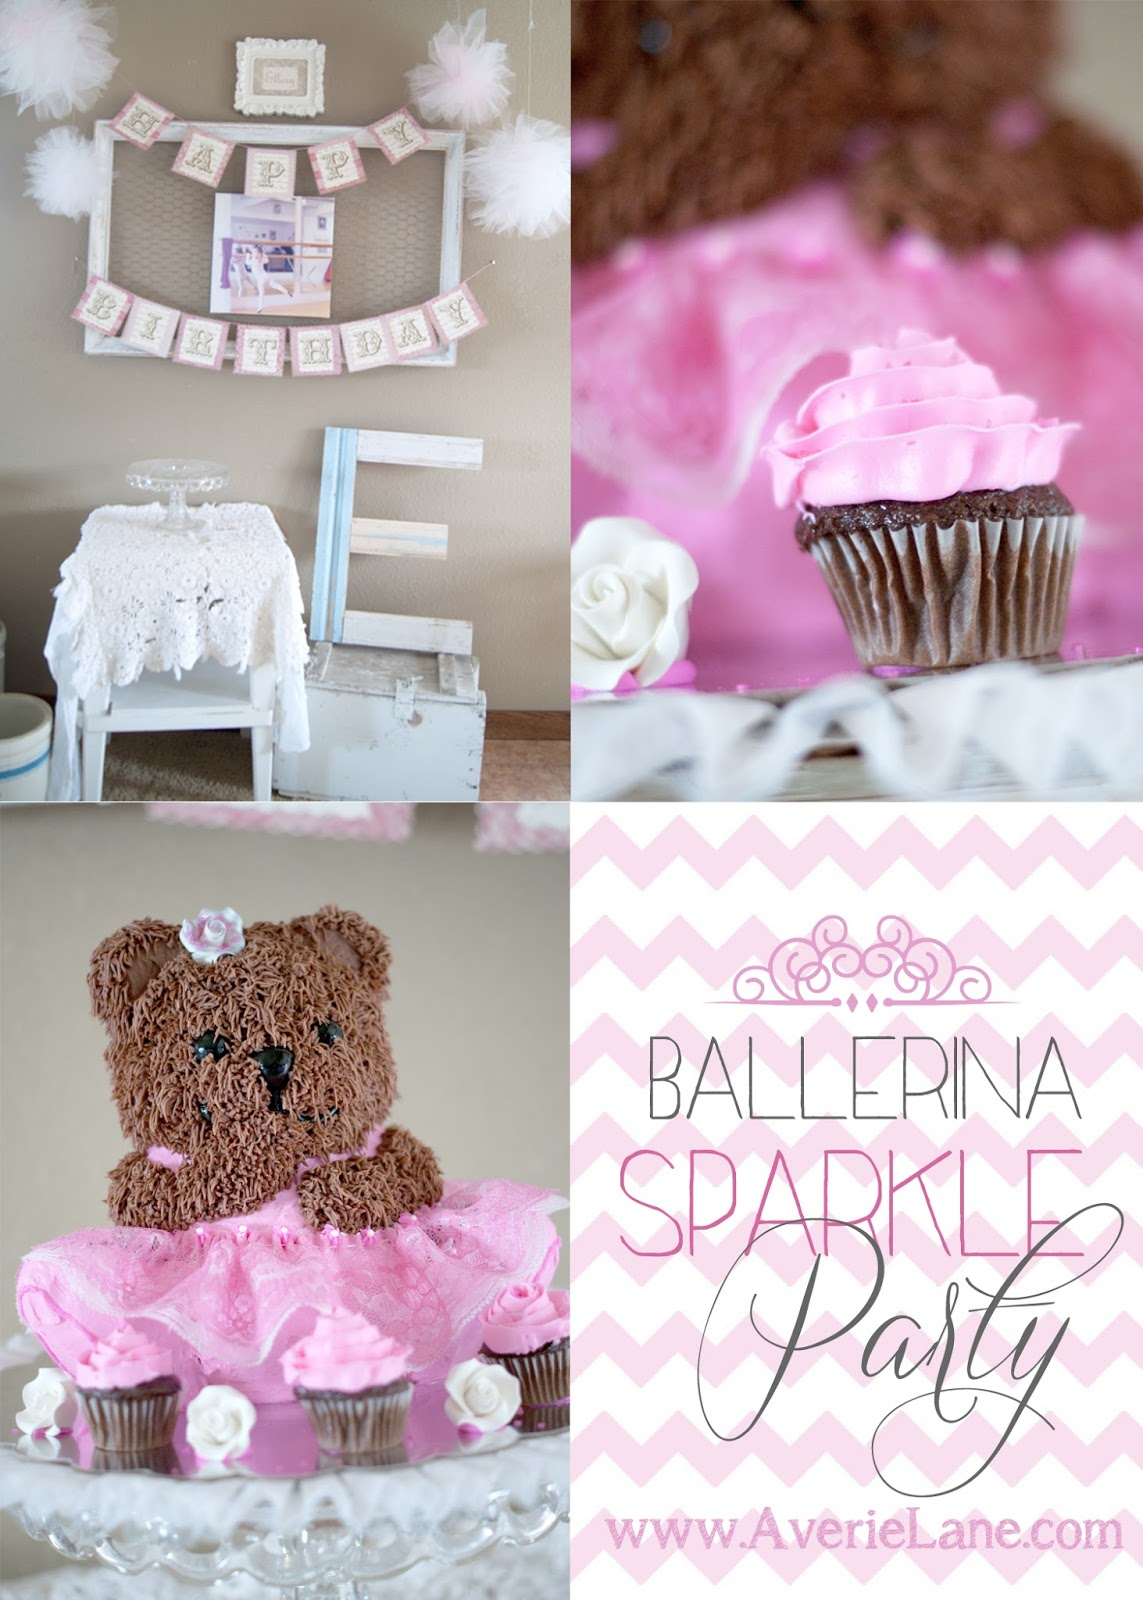 Ballerina Bear Cake , Chocolate Cupcake and Birthday Party Display